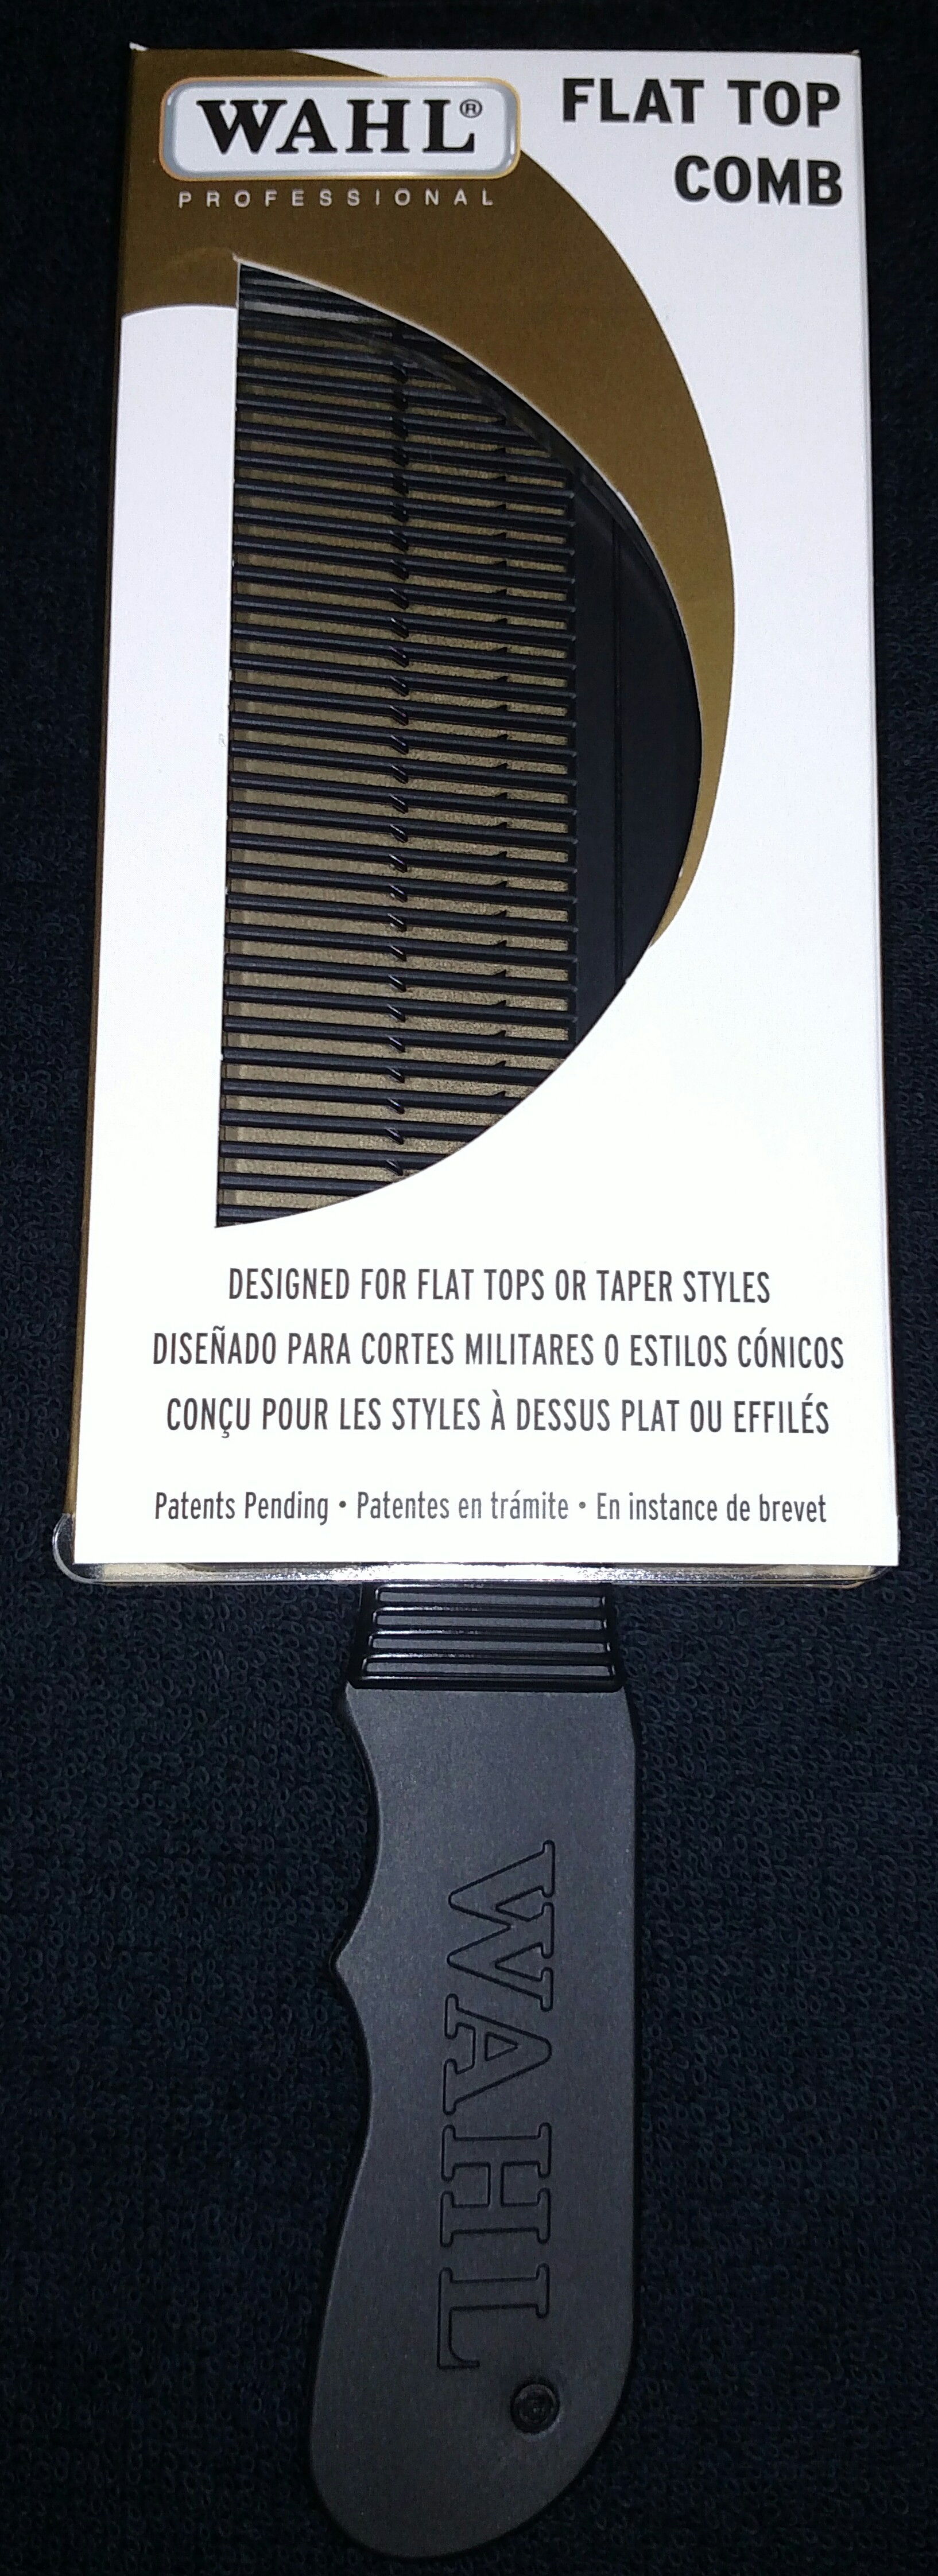 Wahl Flat Top Comb Black